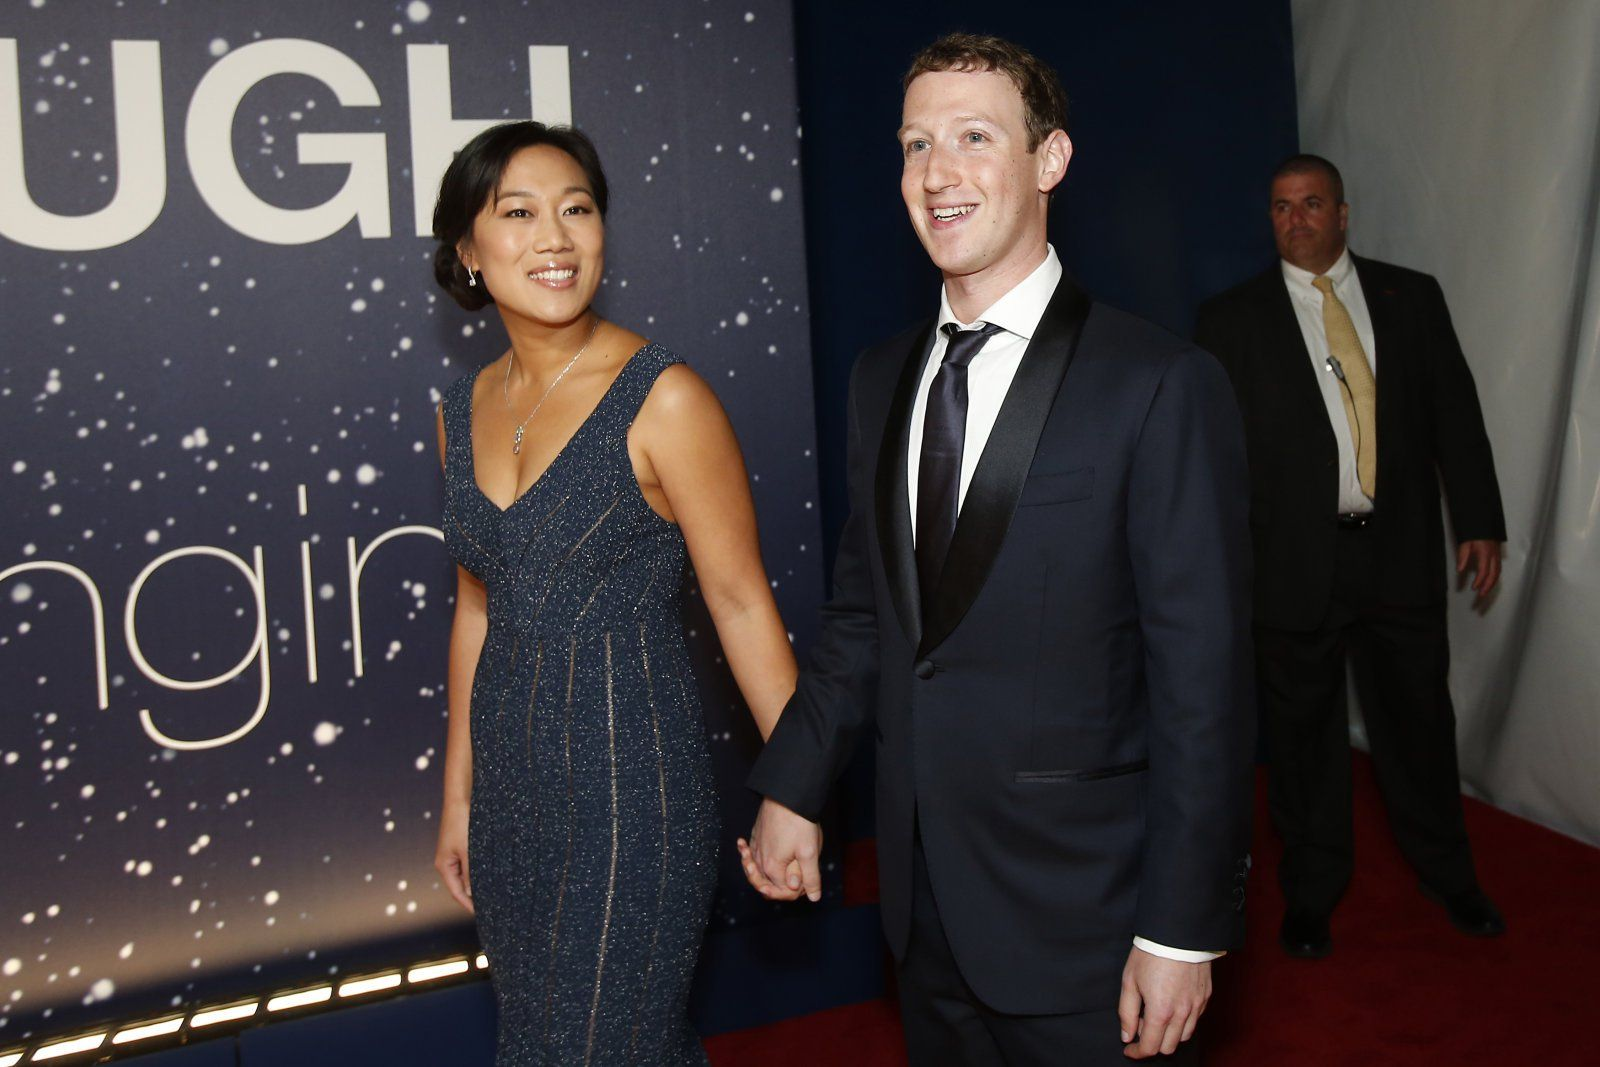 Zuckerberg foundation aims to help with SF's housing crisis - https://www.aivanet.com/2016/07/zuckerberg-foundation-aims-to-help-with-sfs-housing-crisis/